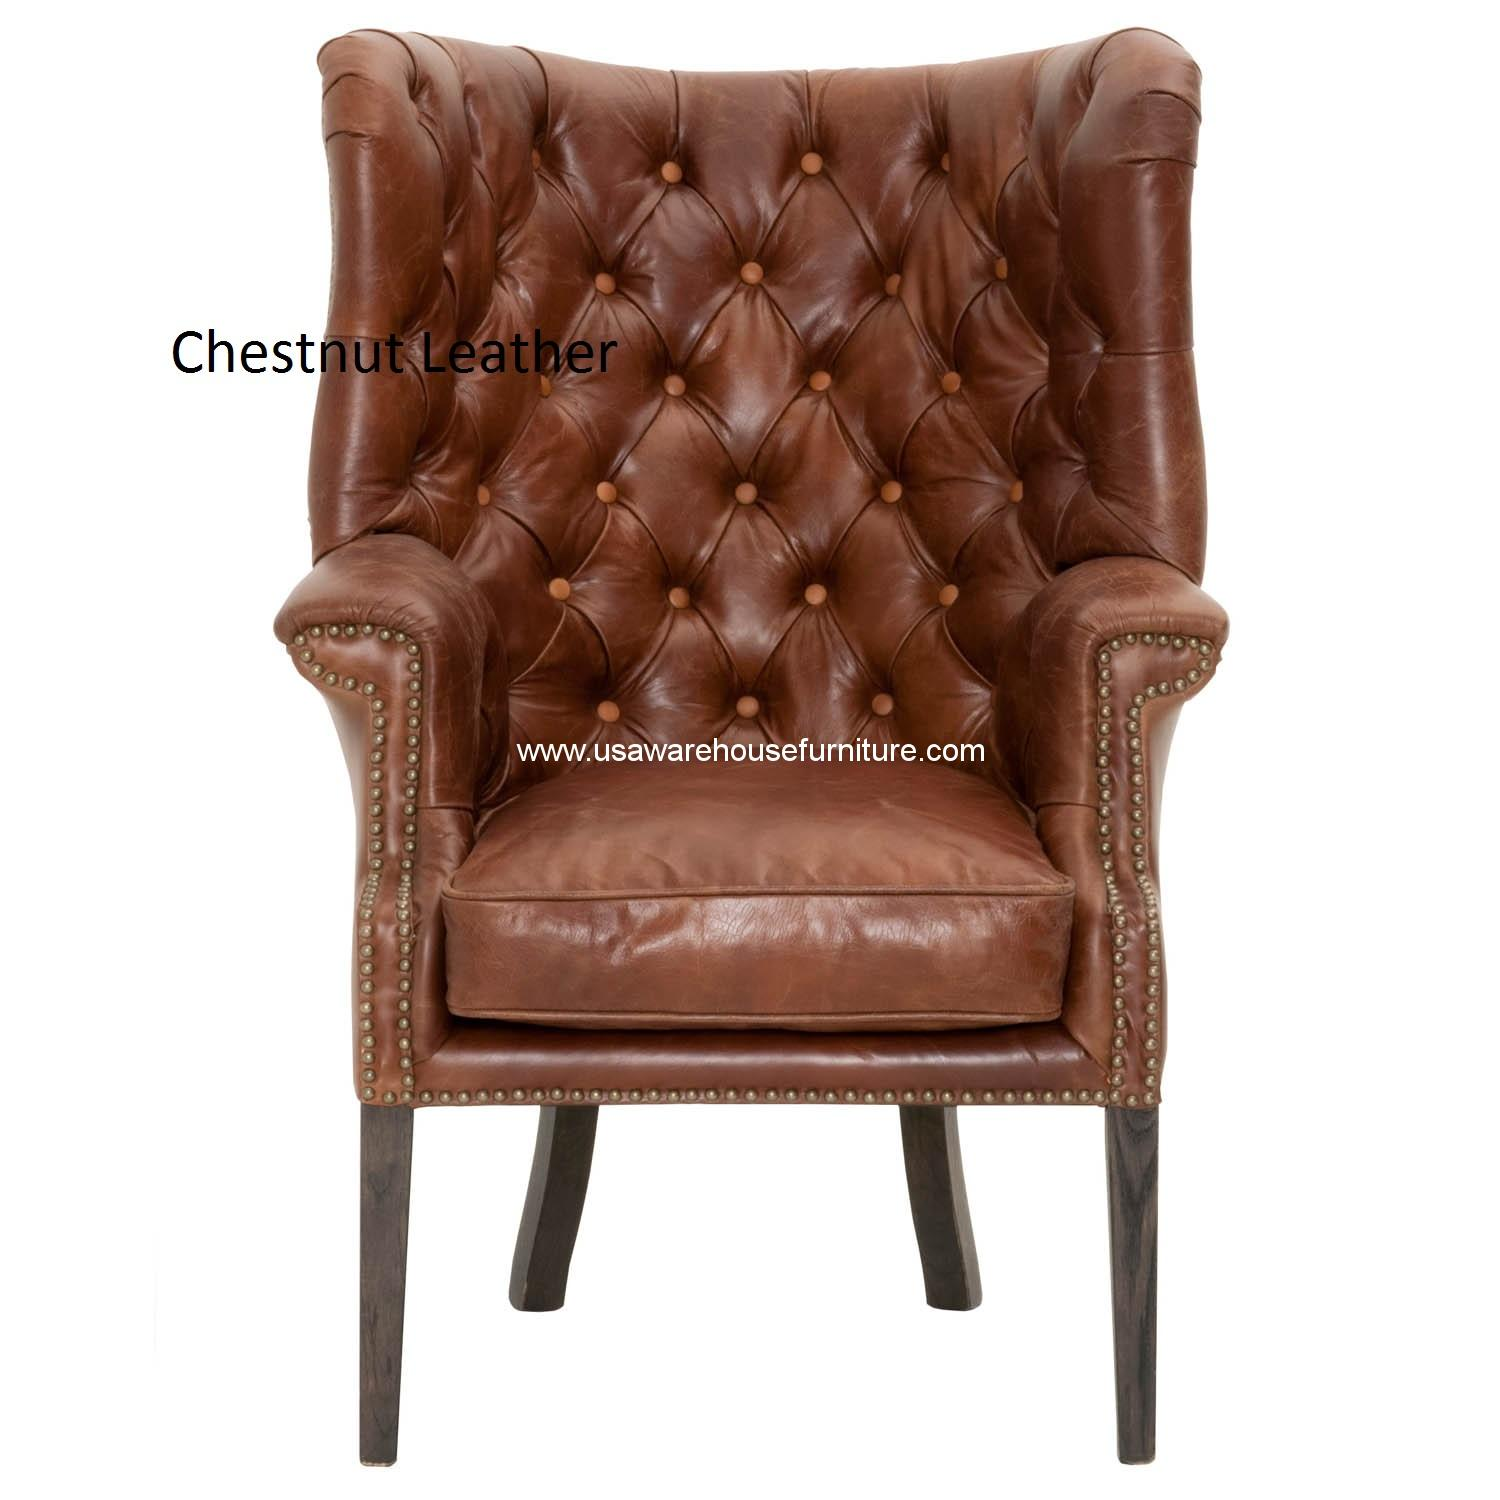 Patina Hughes Chestnut Antique Tufted Leather Club Chair